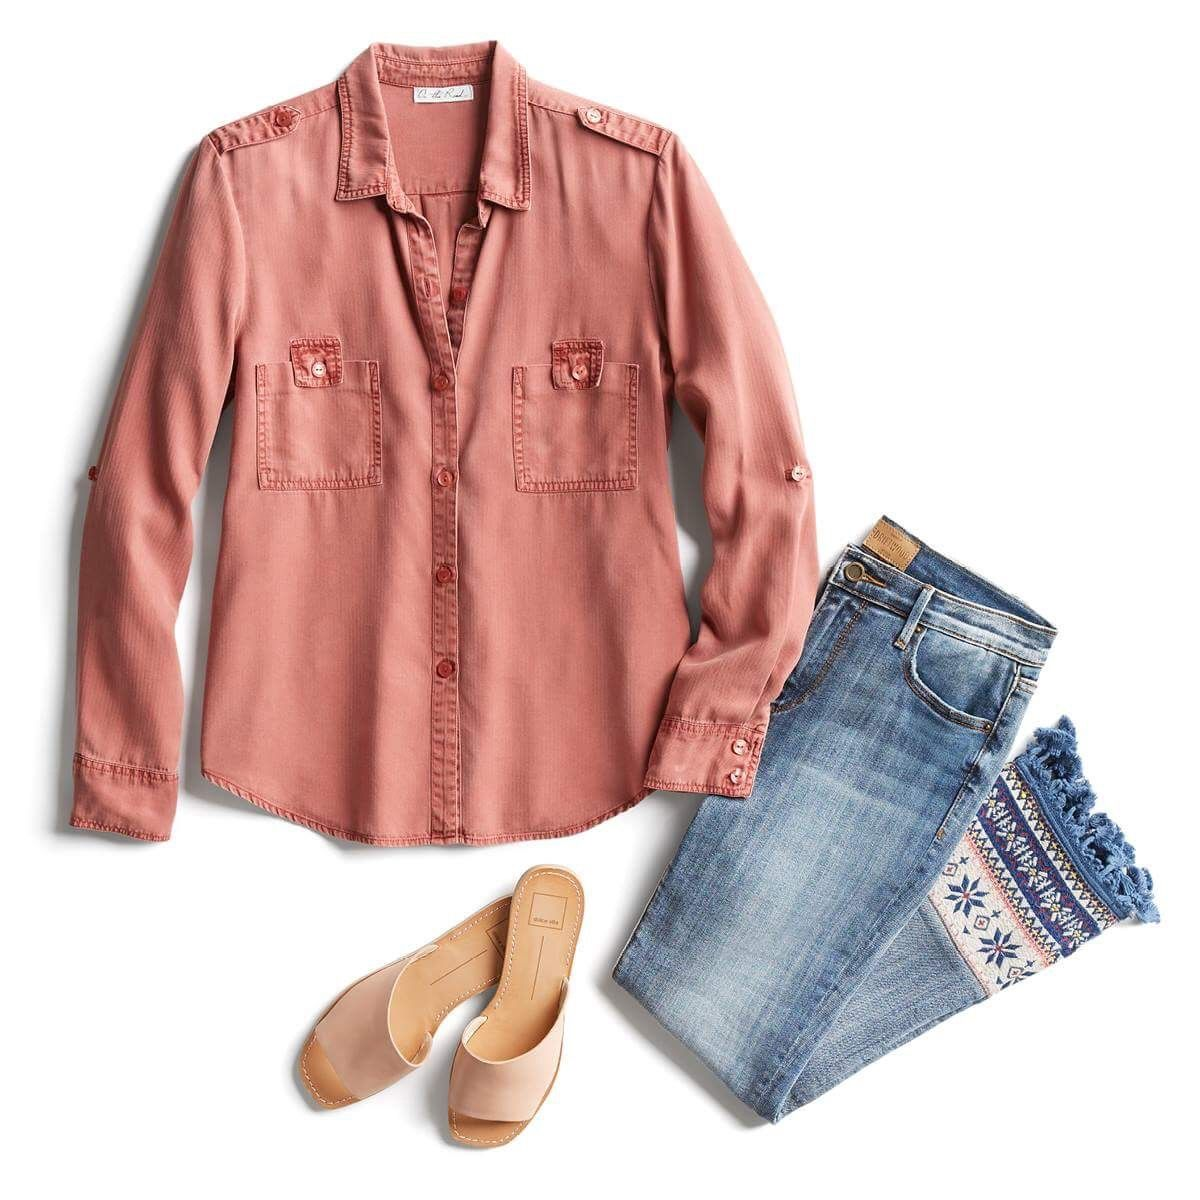 Ootd outfit of the day stitch fix style quiz referral link